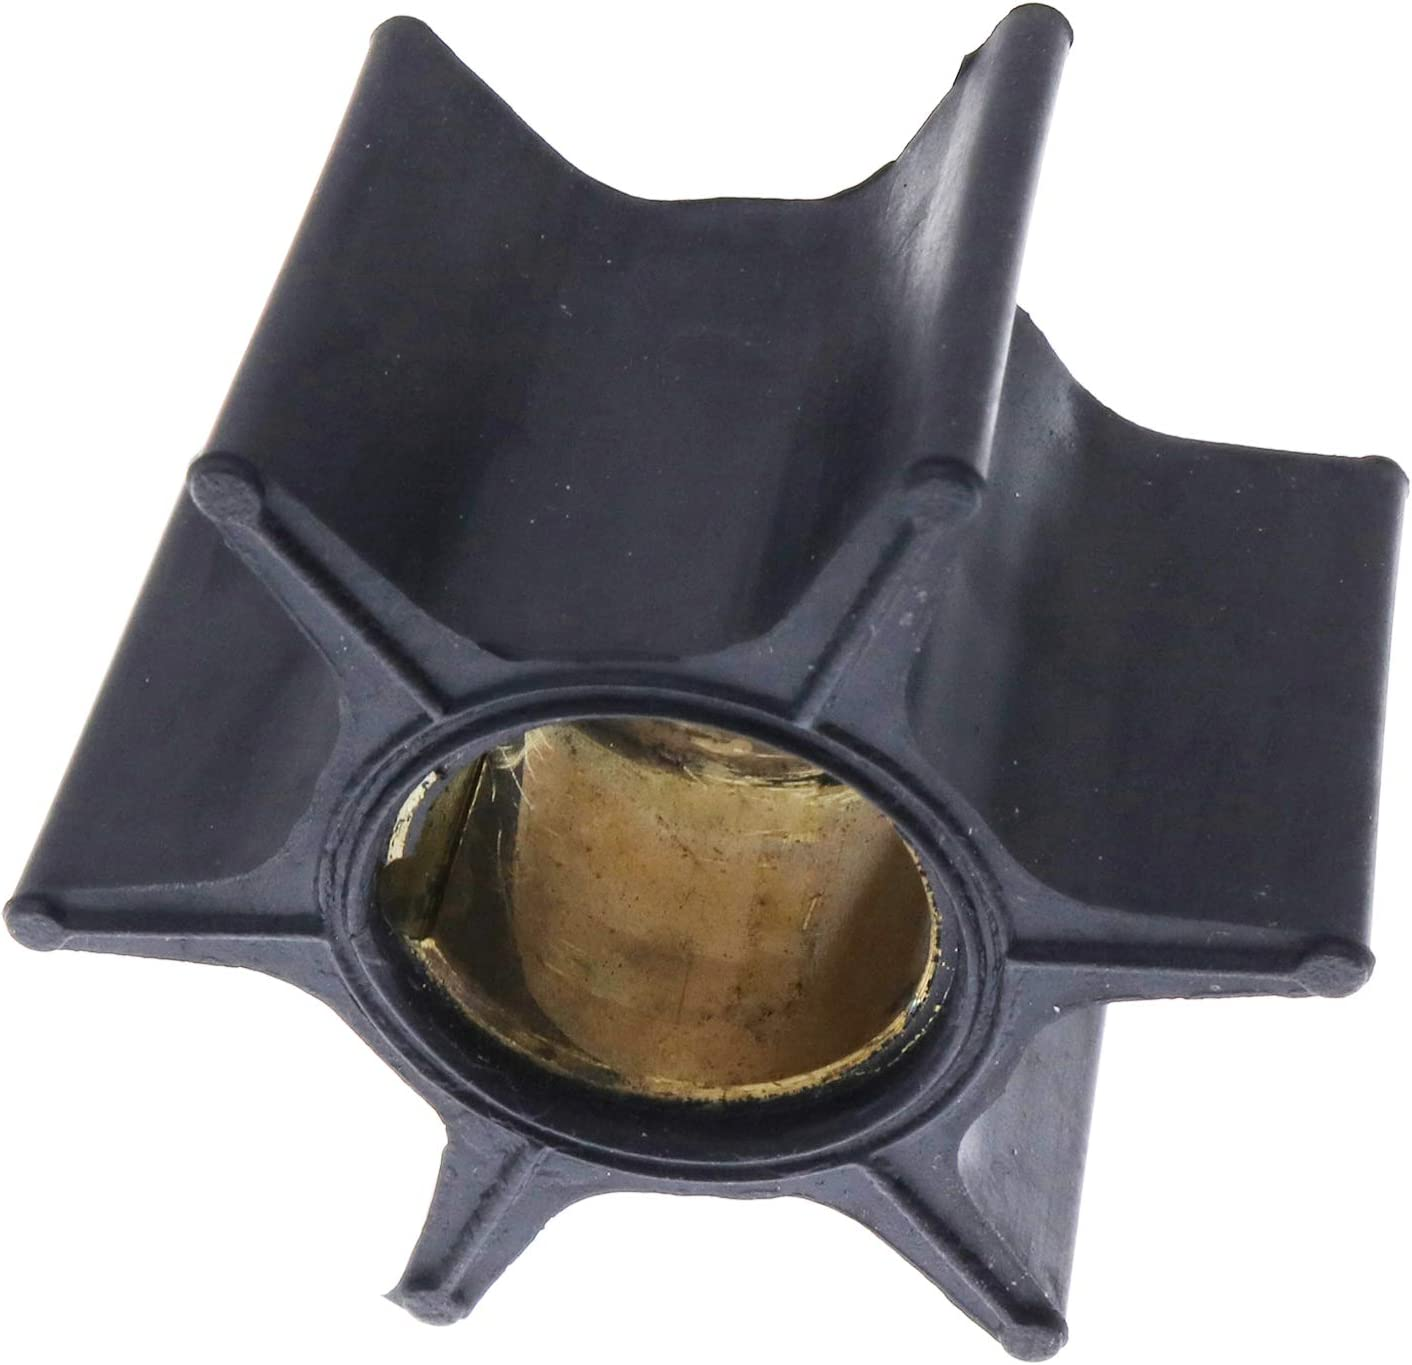 Yixin Water Pump Impeller for Mercury Mercruiser 47-89984 47-65960 Chrysler 47-803631T Sierra 18-3017 65HP-225HP Outboard Motor